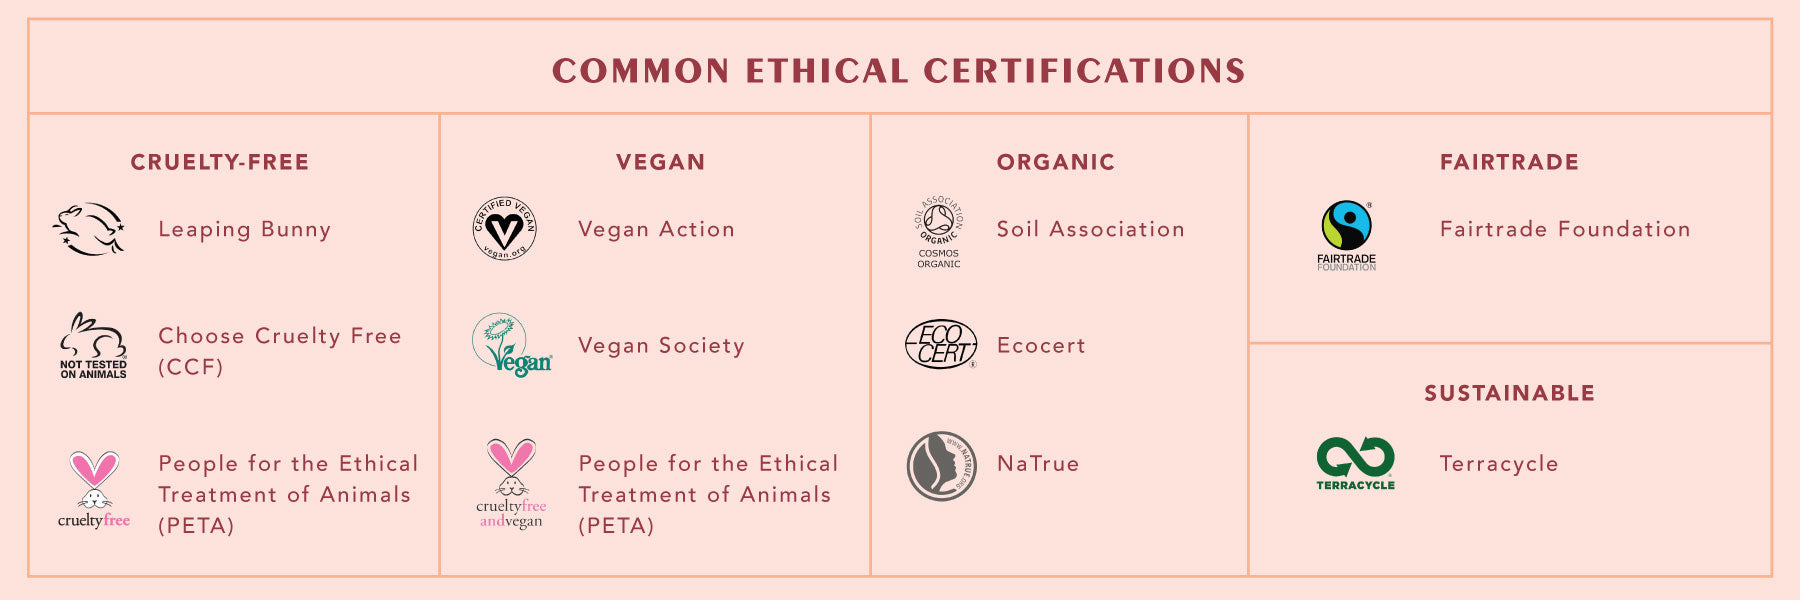 Common Ethical Certifications for Ethical Beauty (Credit: Time to Get Clean)